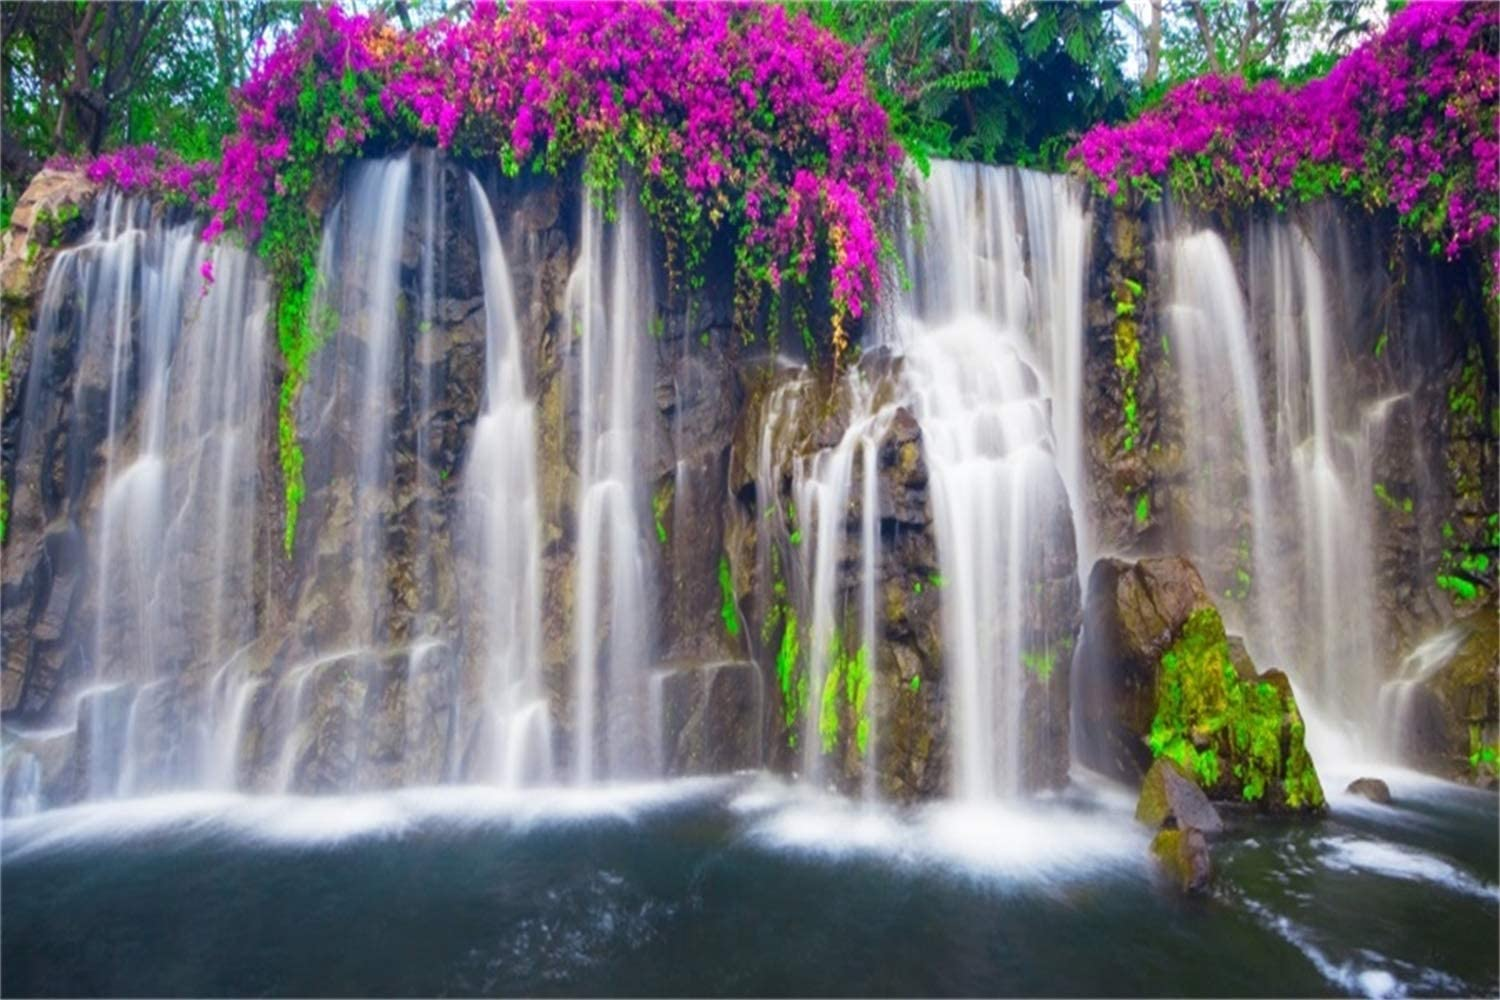 Leowefowa Spring Violet Flowers Waterfall Backdrop 15x10ft Picturesque Nature Landscape Vinyl Photography Background Child Adult Photo Wedding Shoot Wallpaper Studio Photo Booth Props